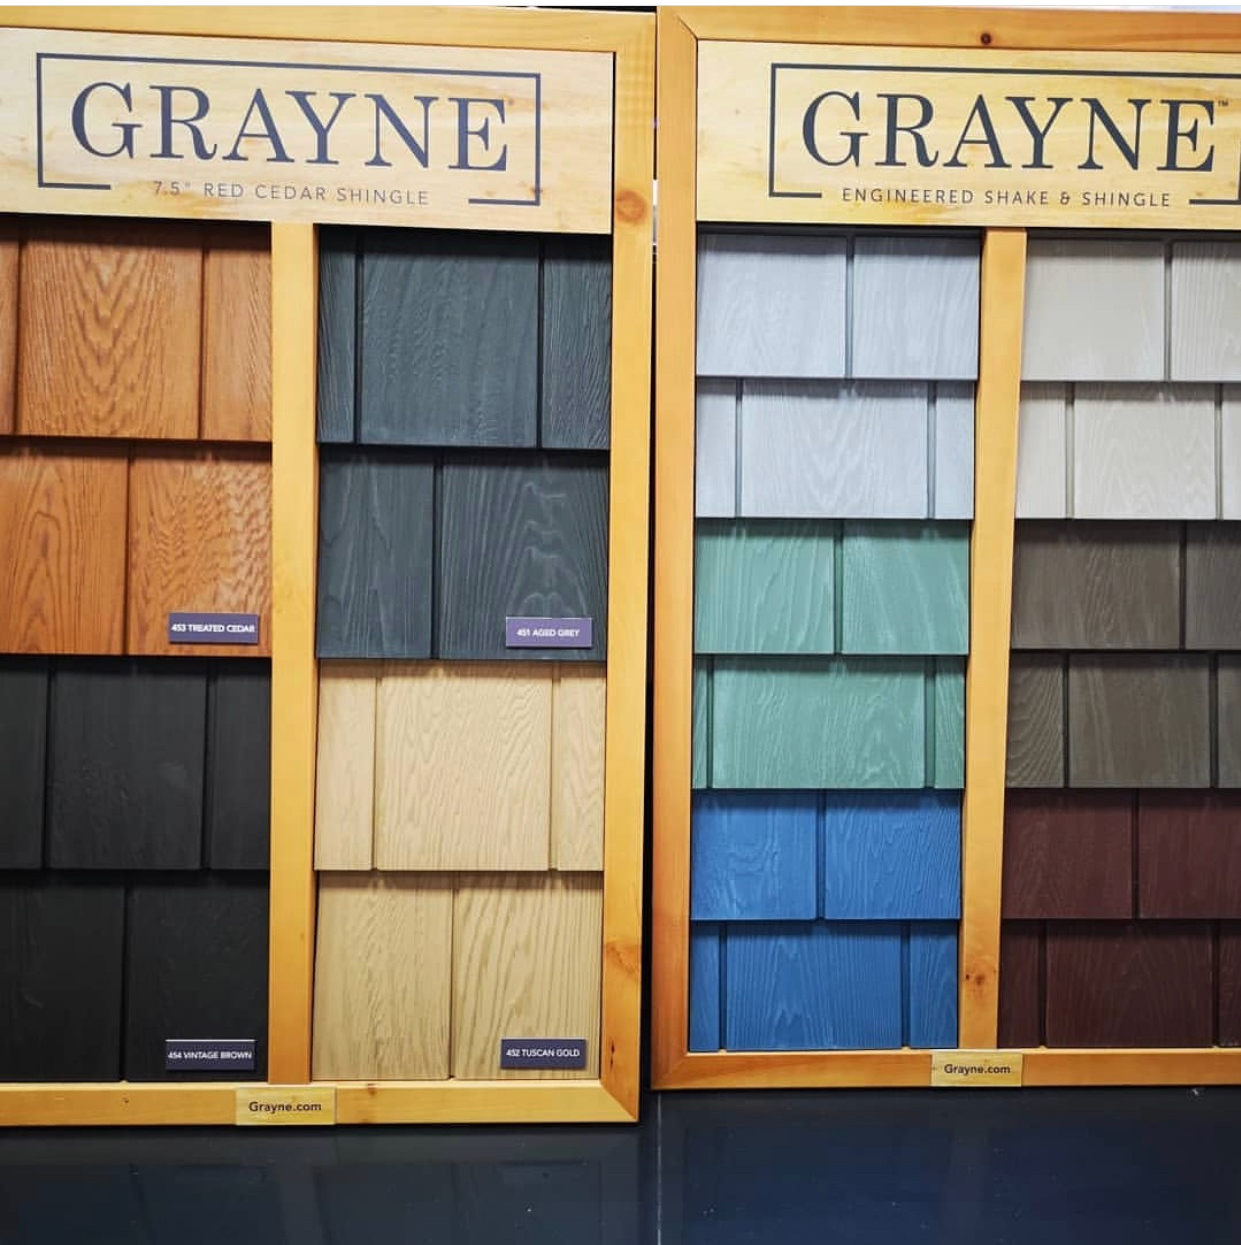 Best Grayne Engineered Cedar Shingles Are Available In 5 Red Cedar And 7 5 White Cedar Profiles 640 x 480